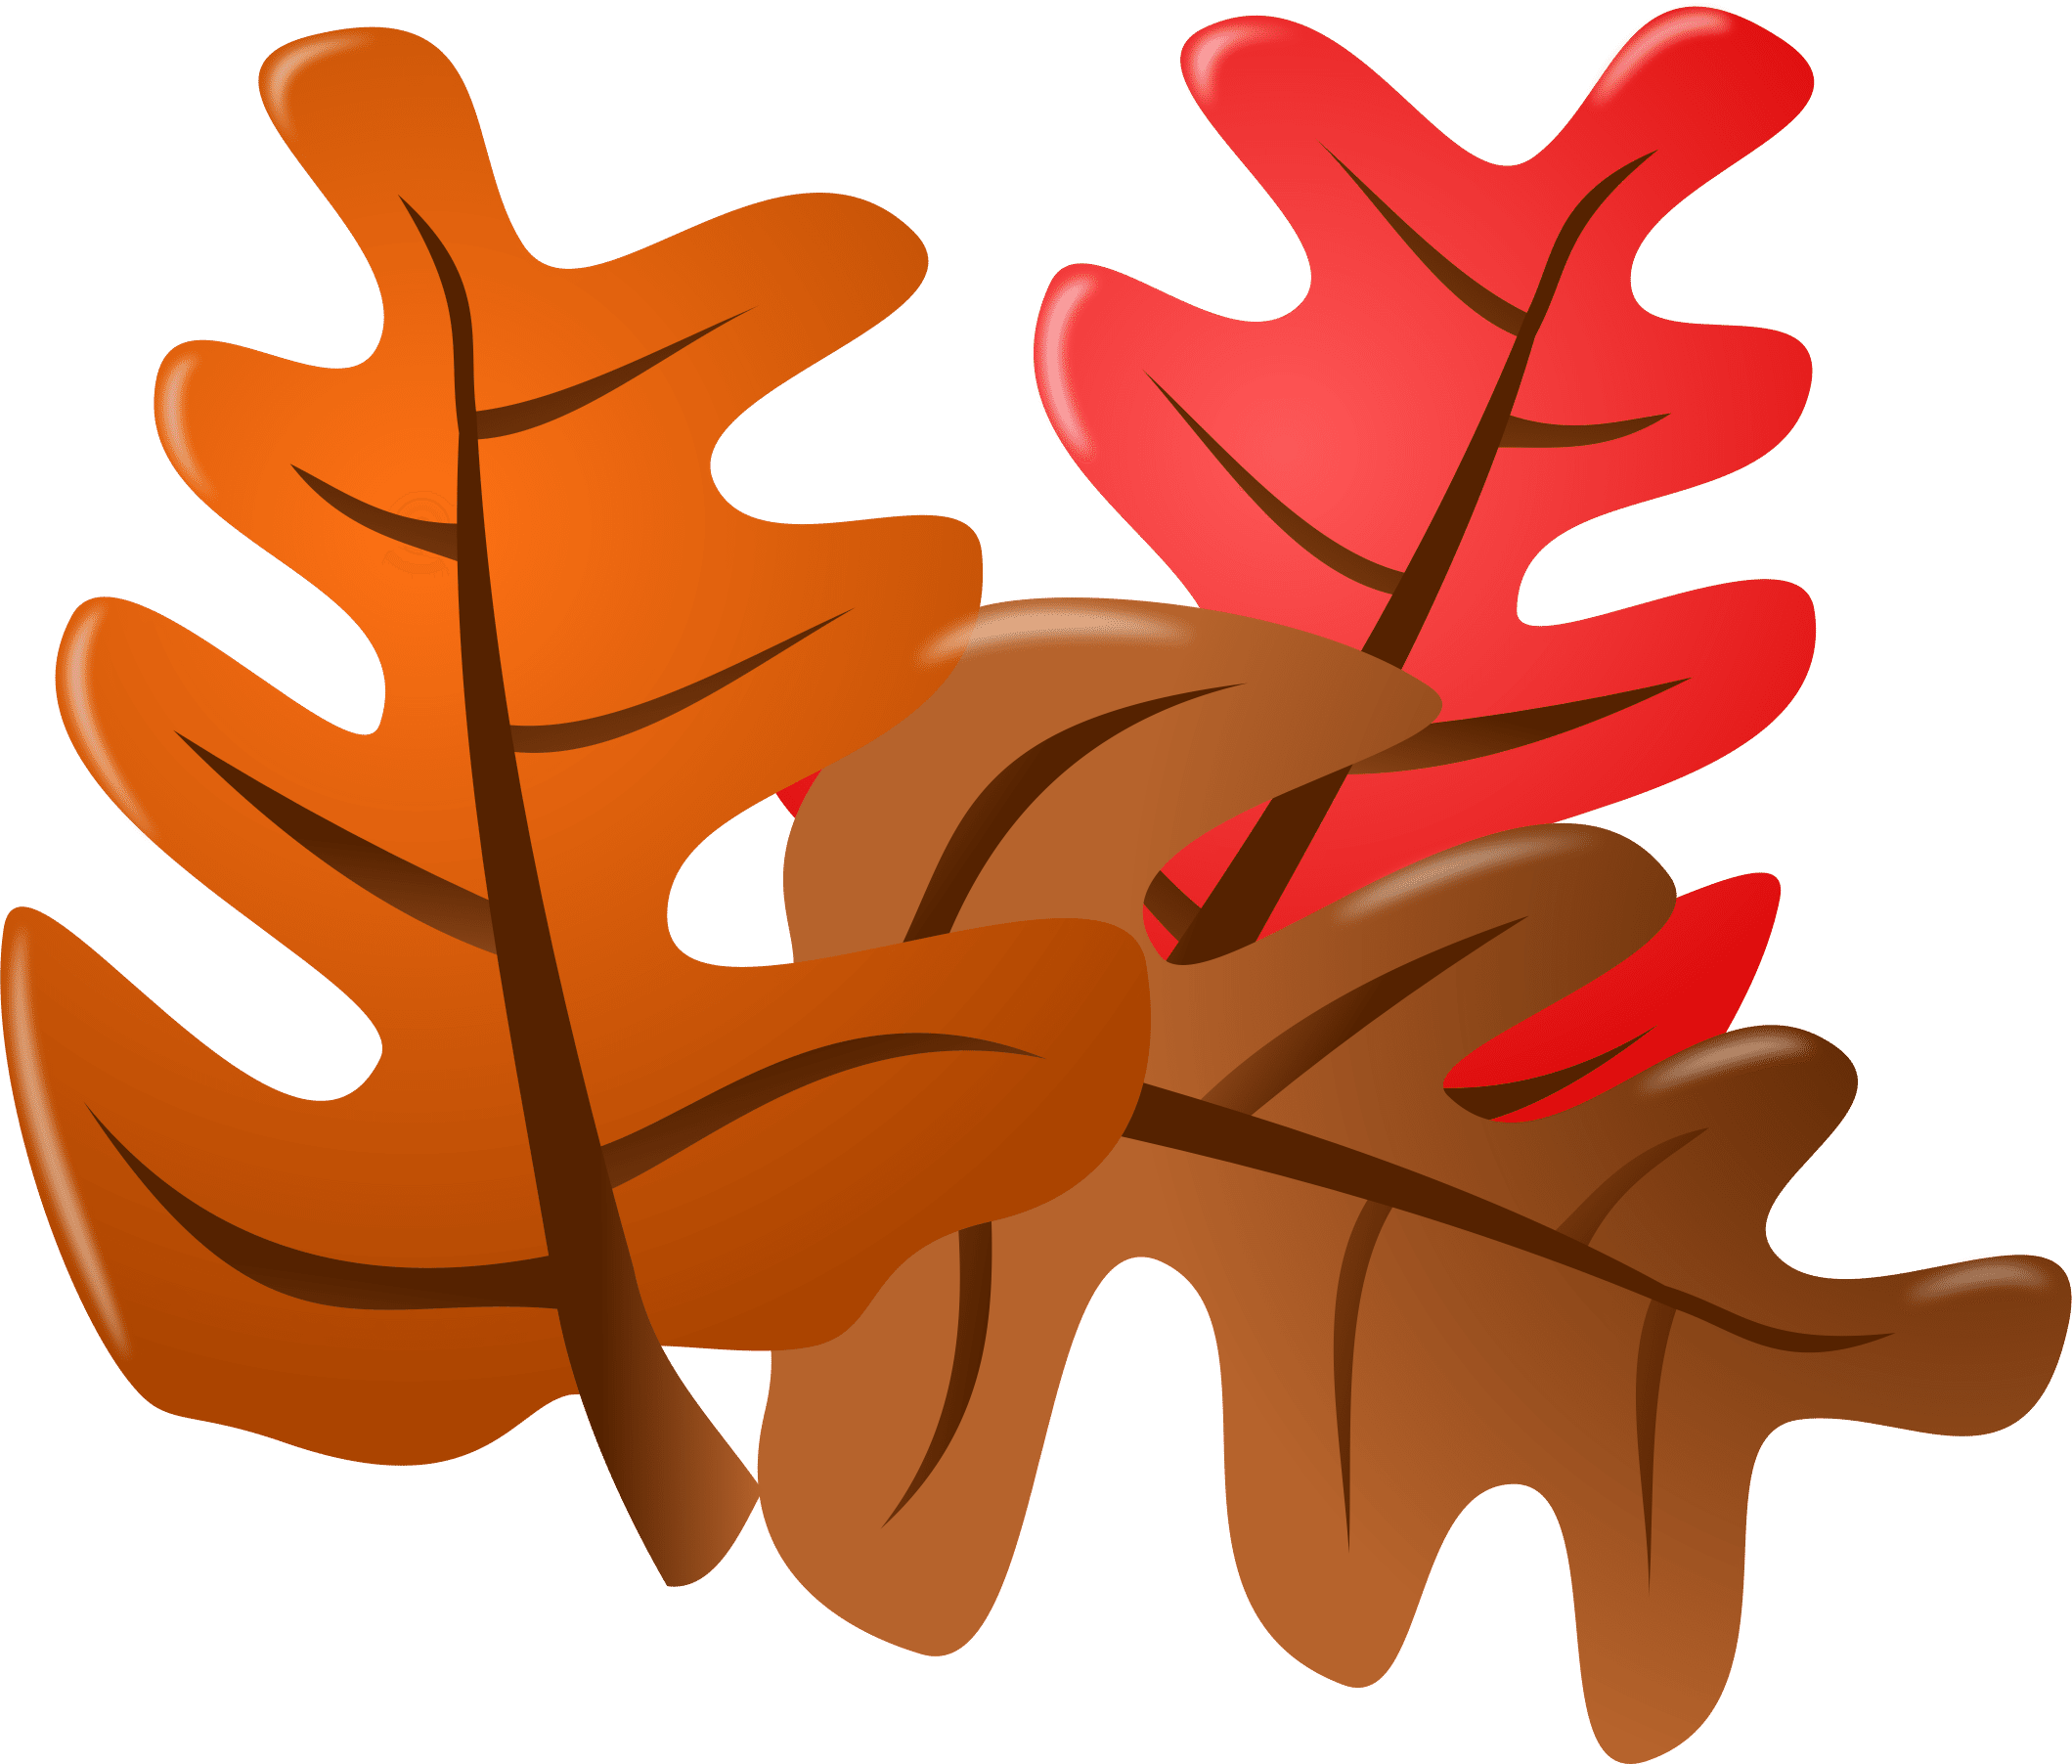 Download These Colorful Free Clip Art Images of Fall Leaves